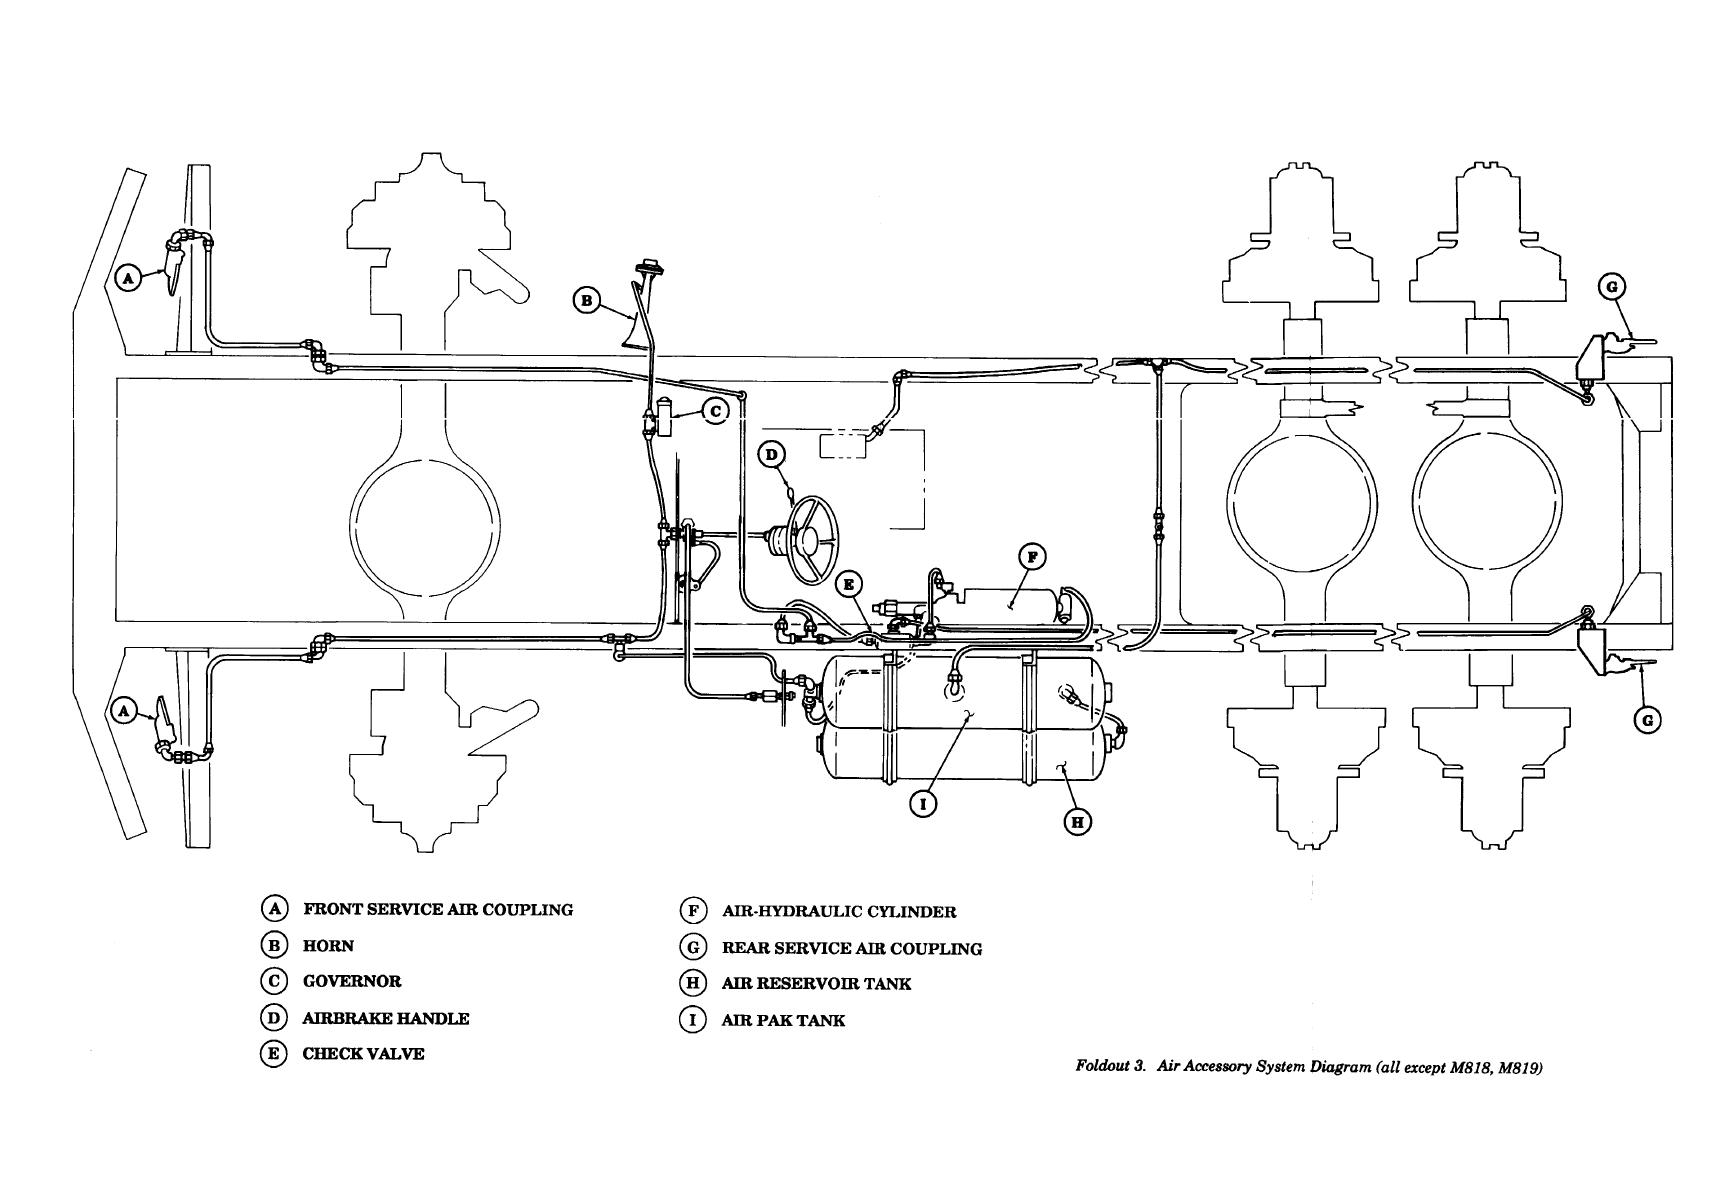 Foldout 2. Air Accessory System Diagram